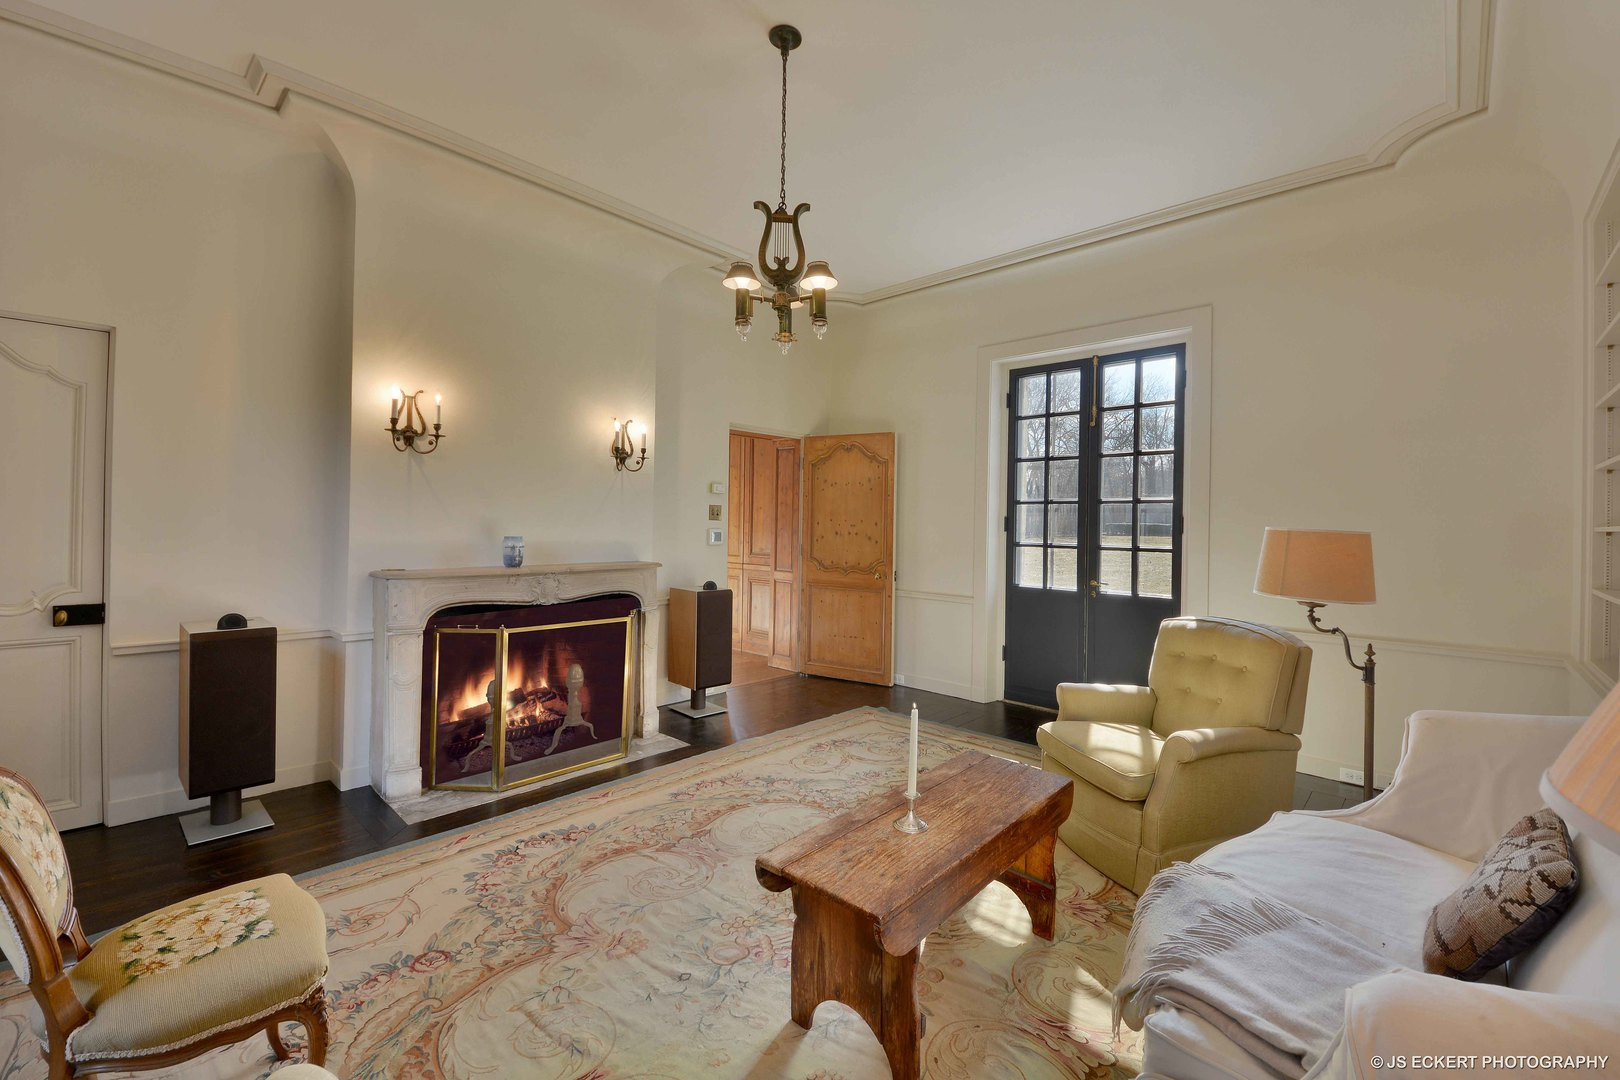 Beautiful limestone fireplace in a French chateau by David Adler known as the Carolyn More Ely House. Come see the tour of this amazing historic home for sale.